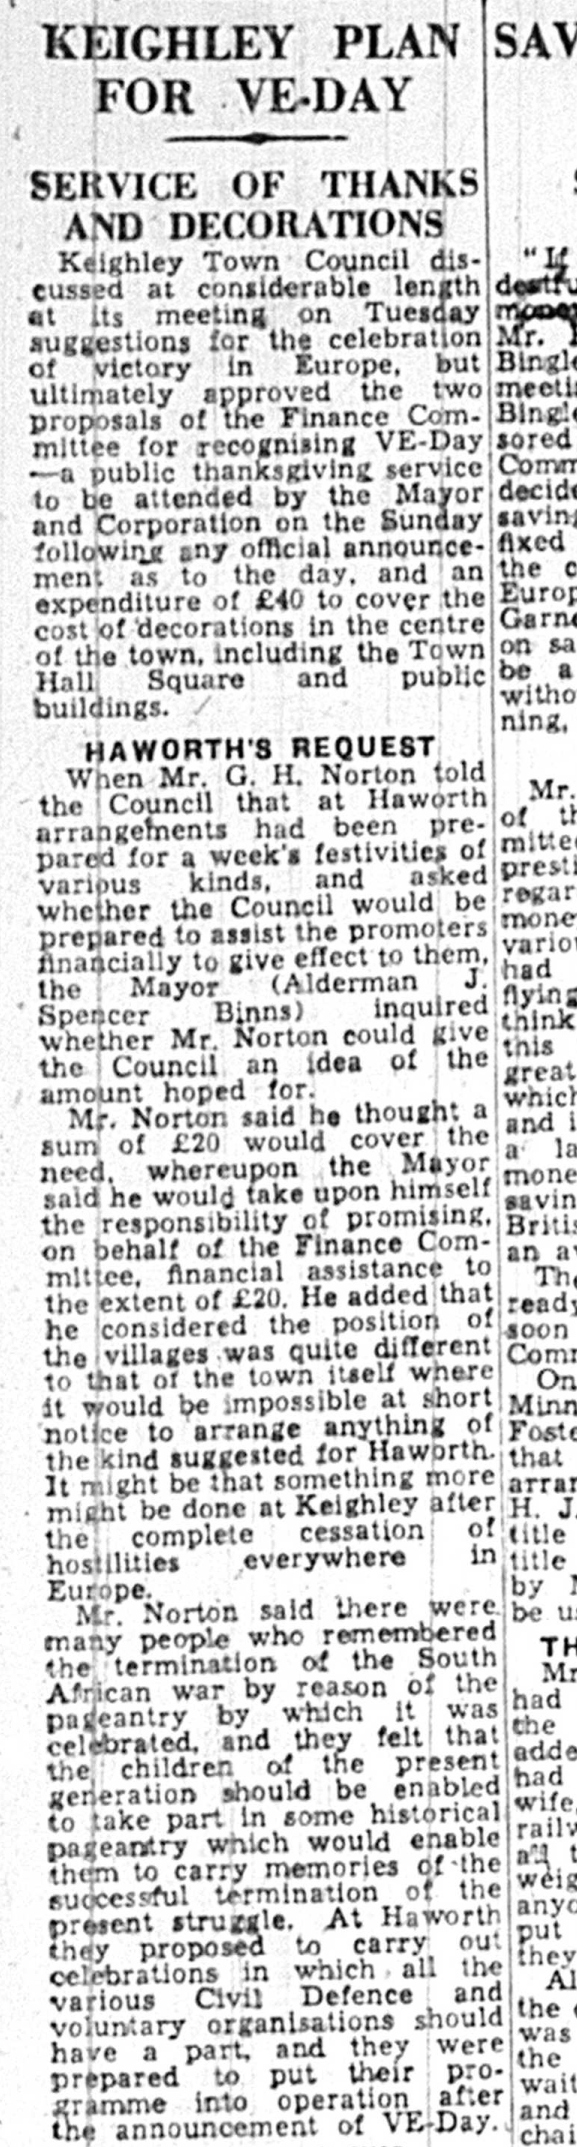 Kly News 05 May 1945 service of thanks and decorations shortened version